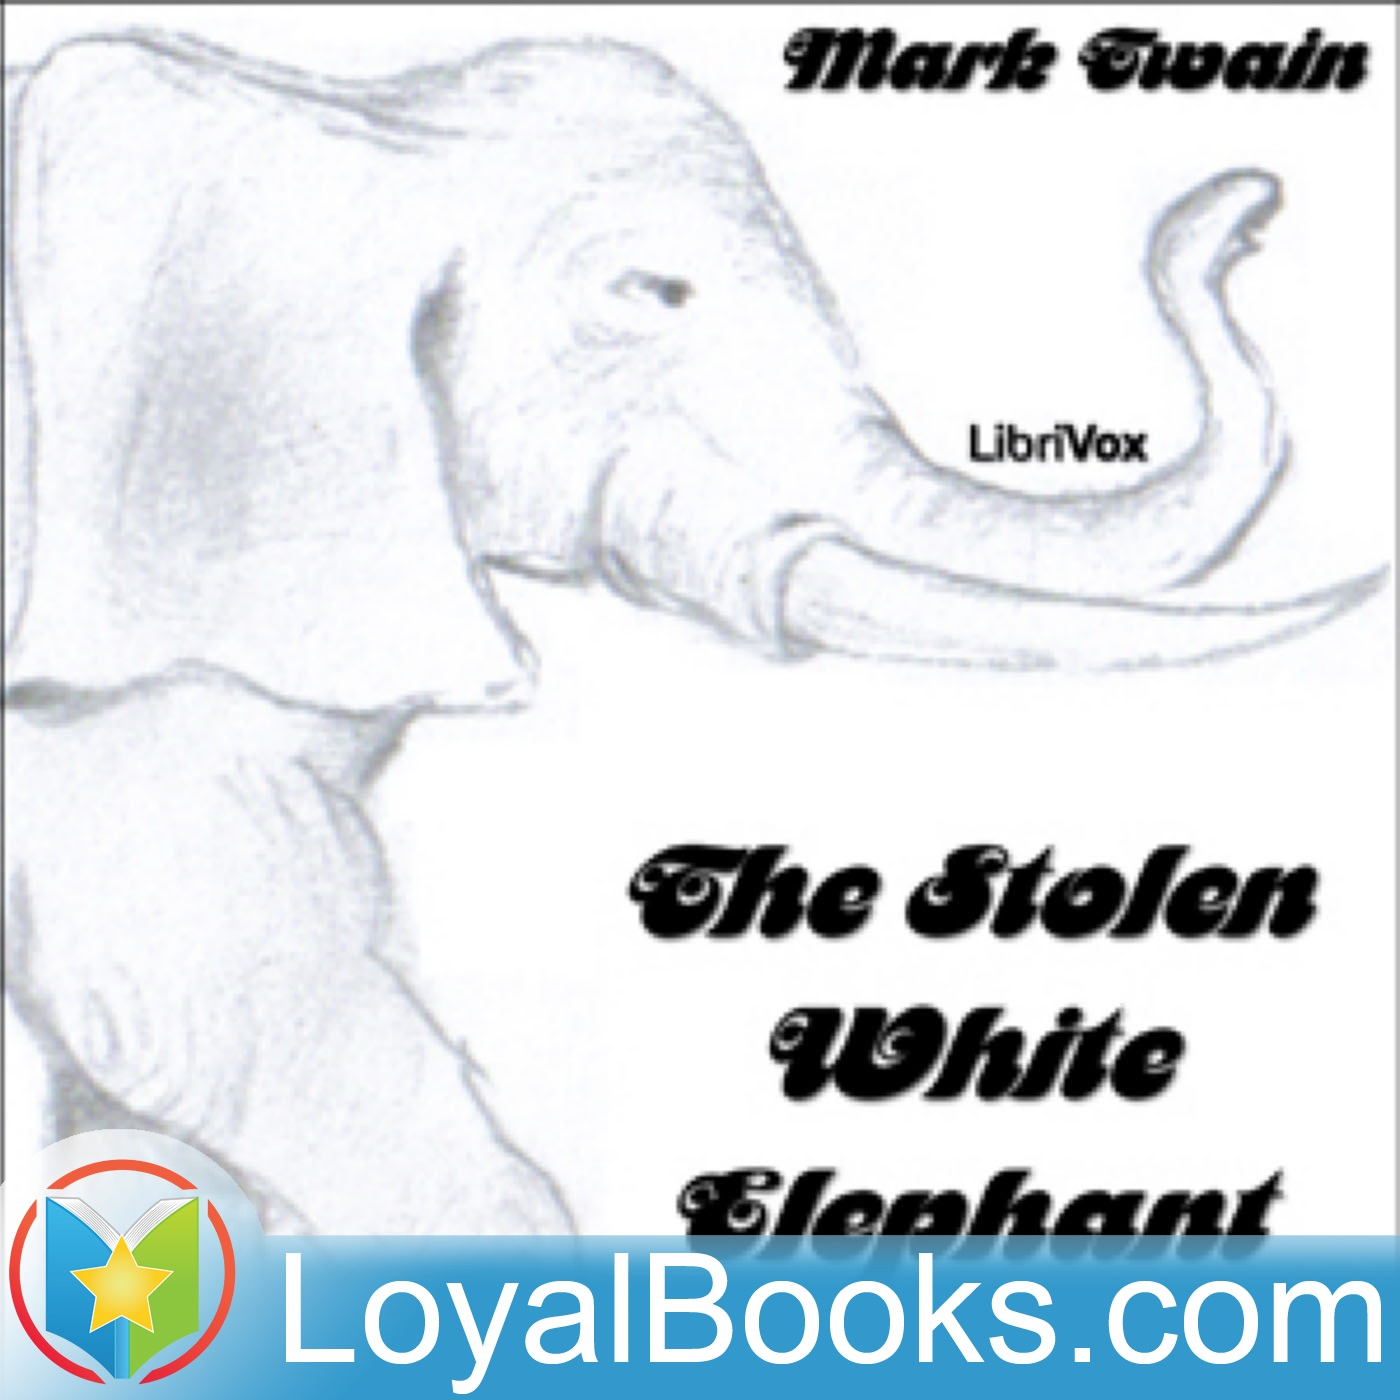 theme of a stolen white elephant Find helpful customer reviews and review ratings for the stolen white elephant at amazoncom read honest and unbiased product reviews from our users.